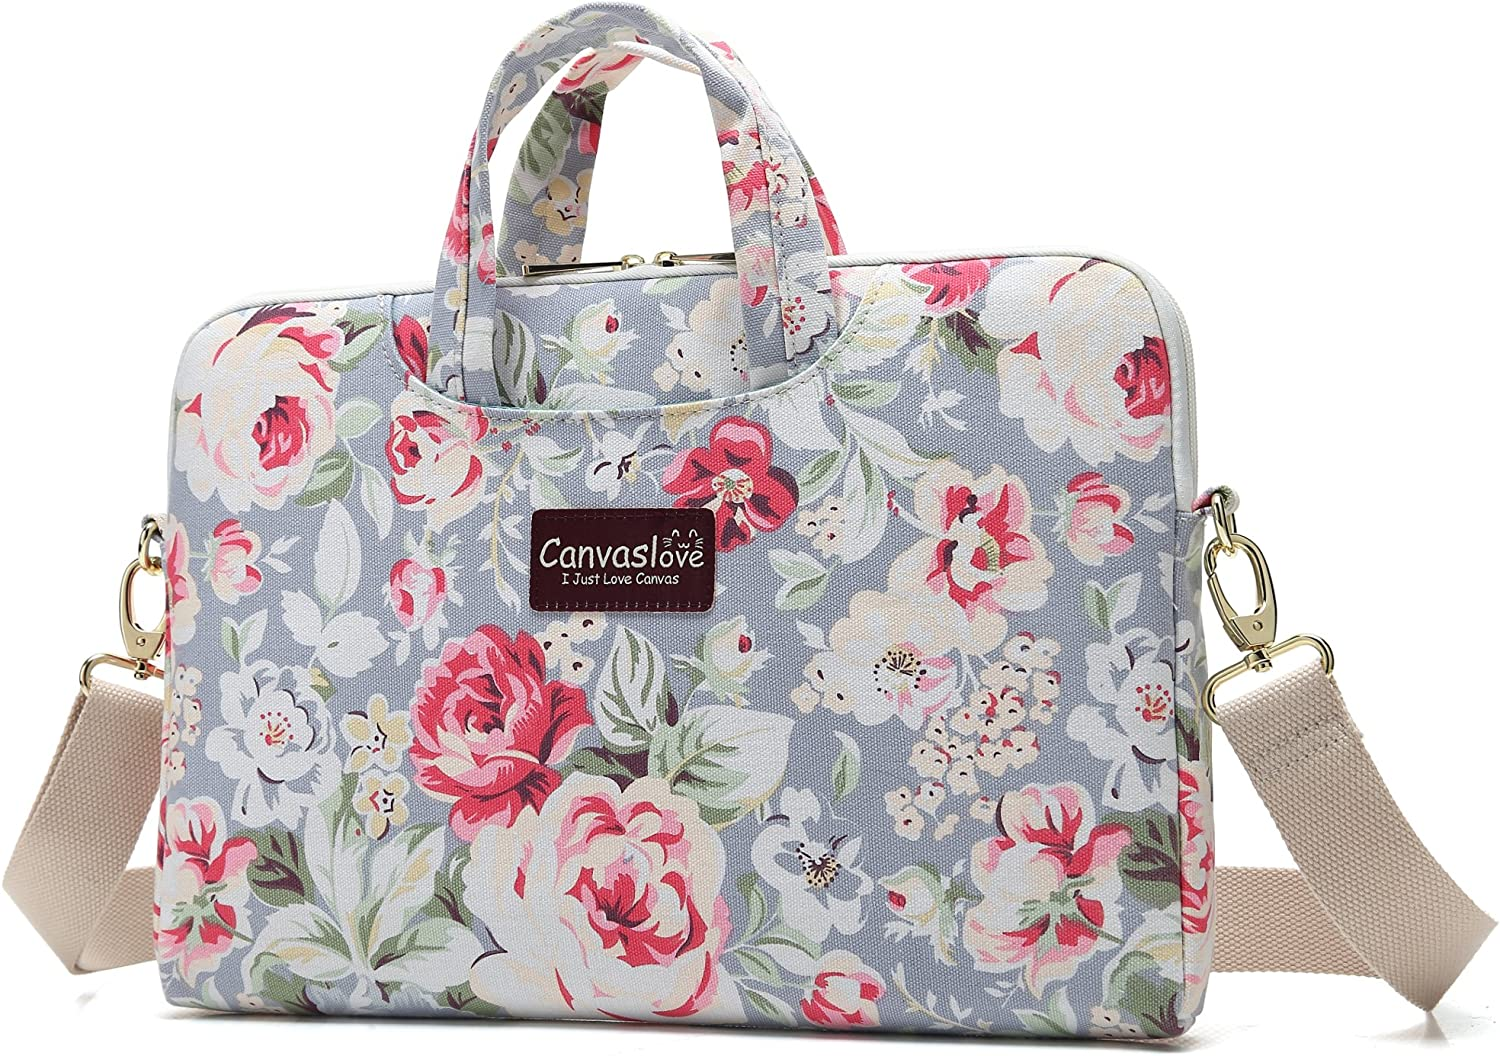 Canvaslove Big Rose Waterproof 13 inch Laptop Shoulder Messenger Case Sleeve Bag For 11 inch 12 inch 13.3 inch Laptop,Chromebook,Ultrabook Carrying Computer Notebook Bag